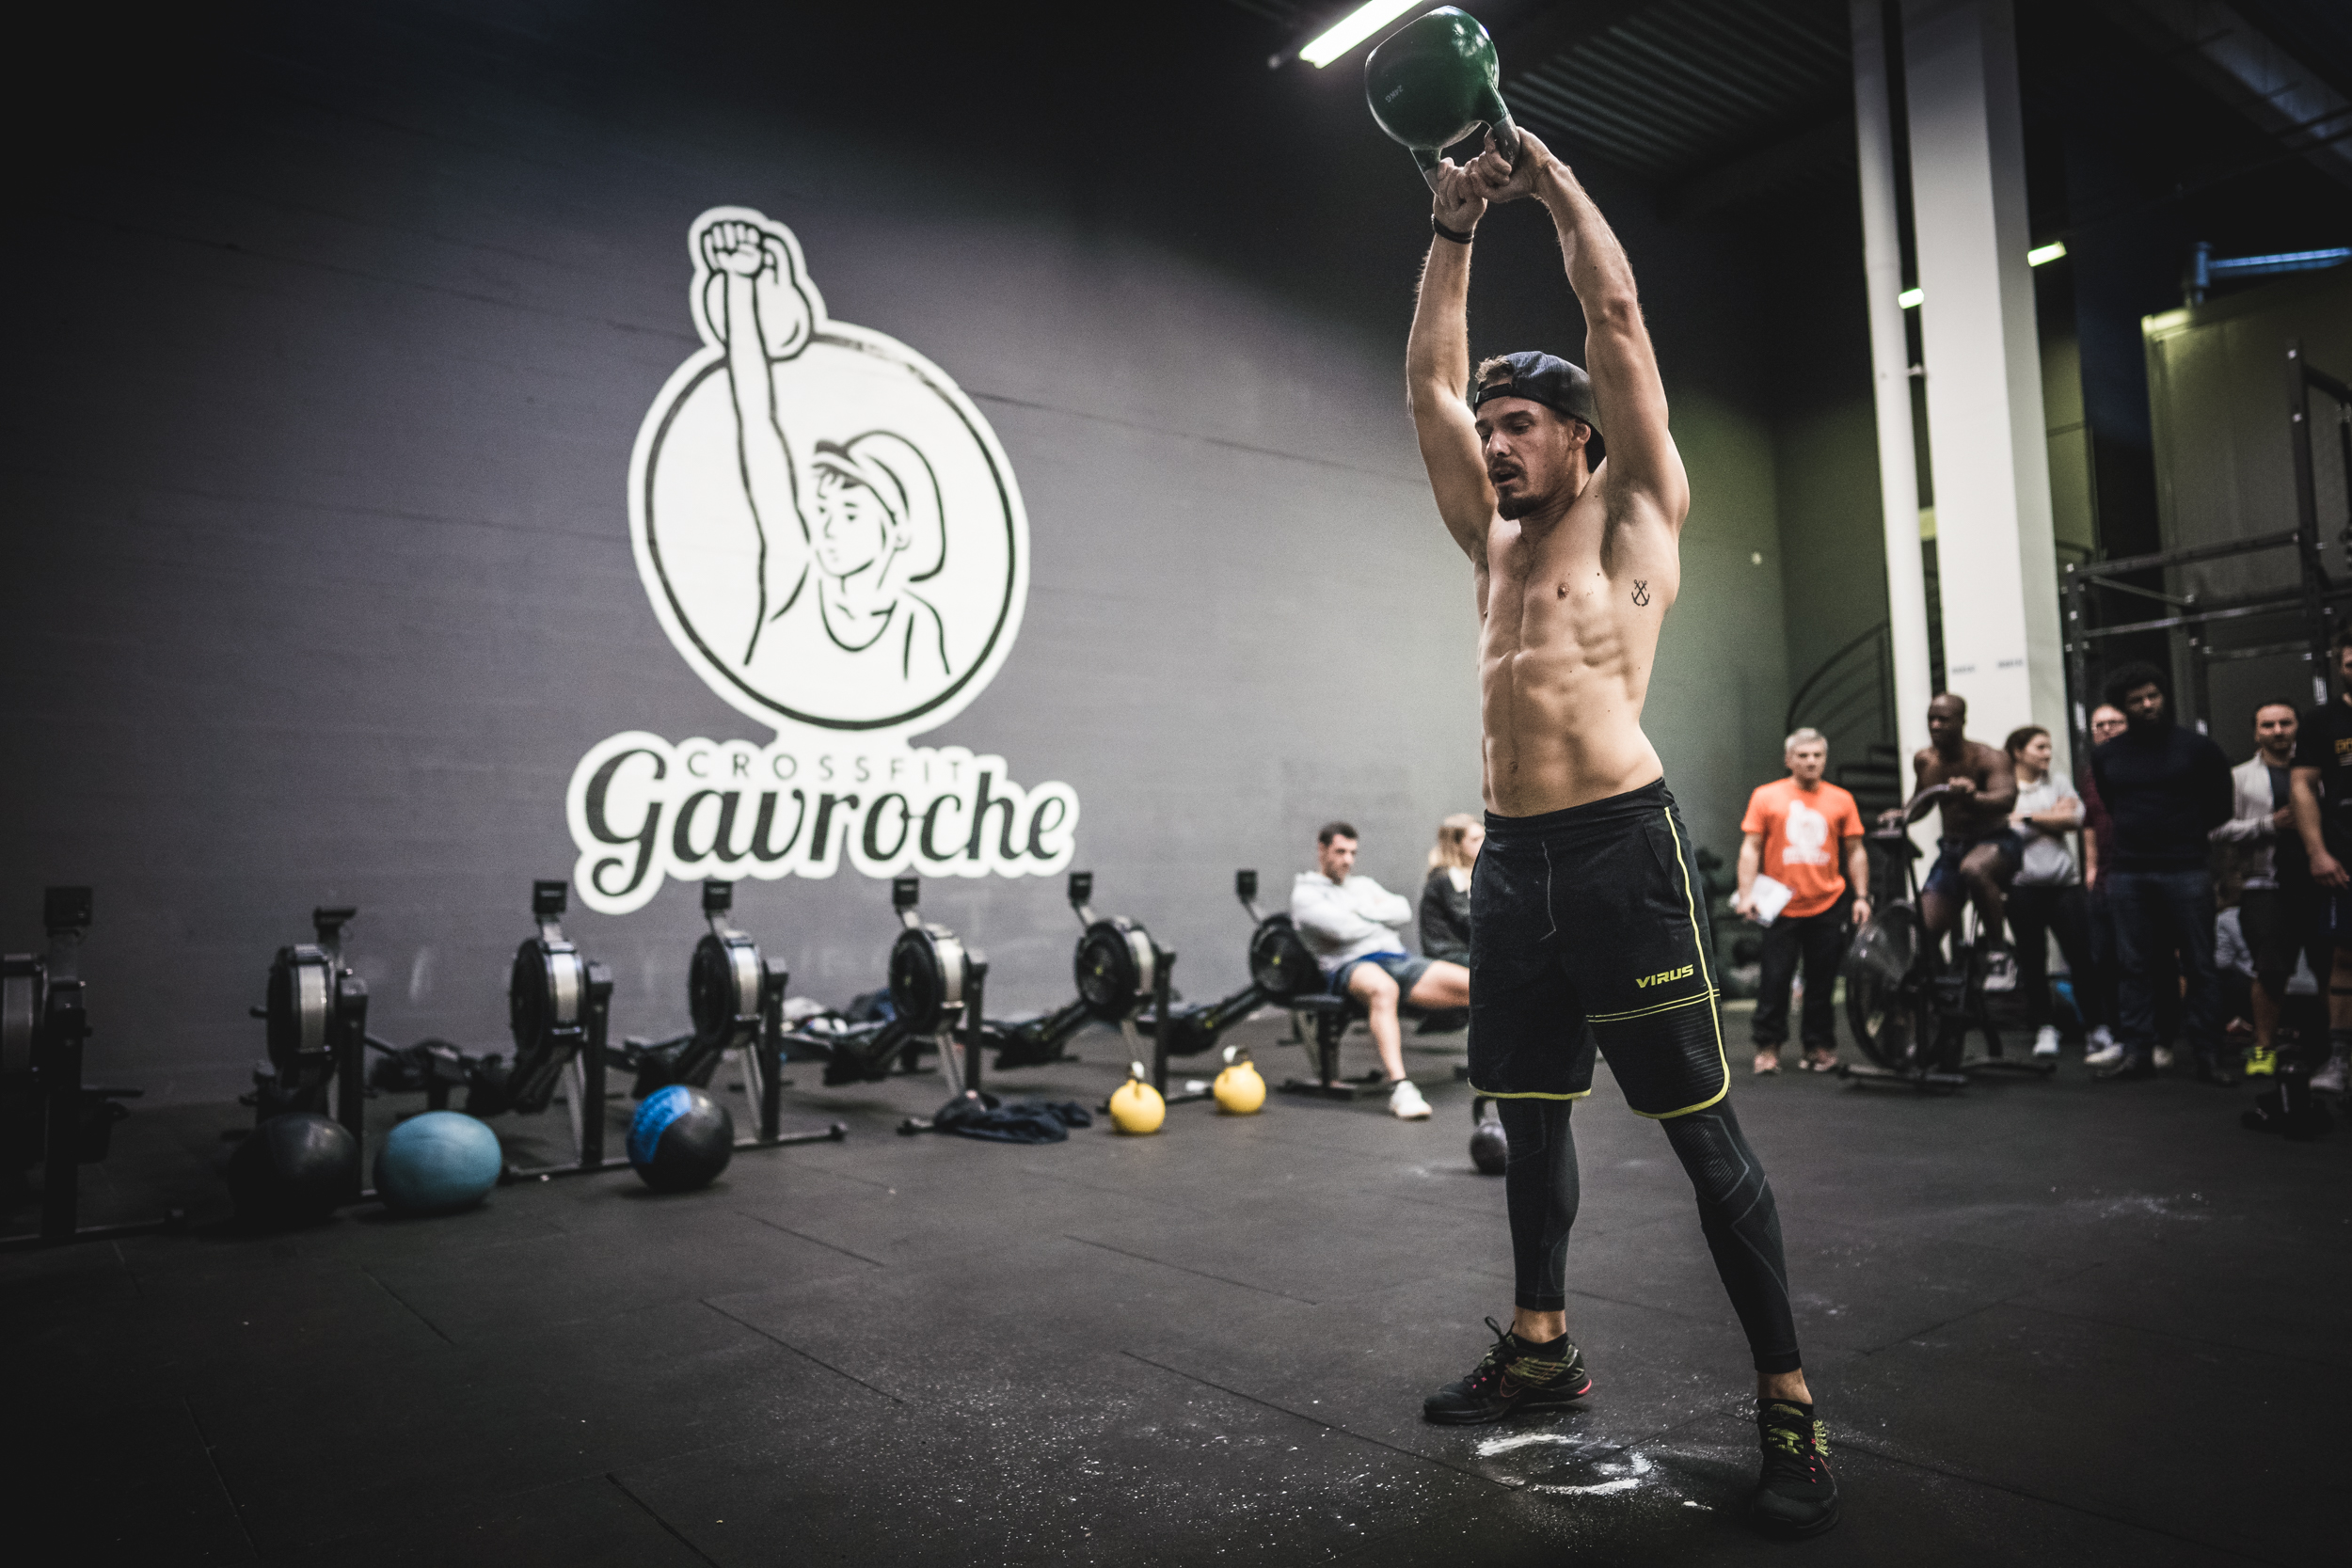 Crossfit Gavroche_Christmas Throwdown 2018_ Florian Leger_ N°-103.jpg